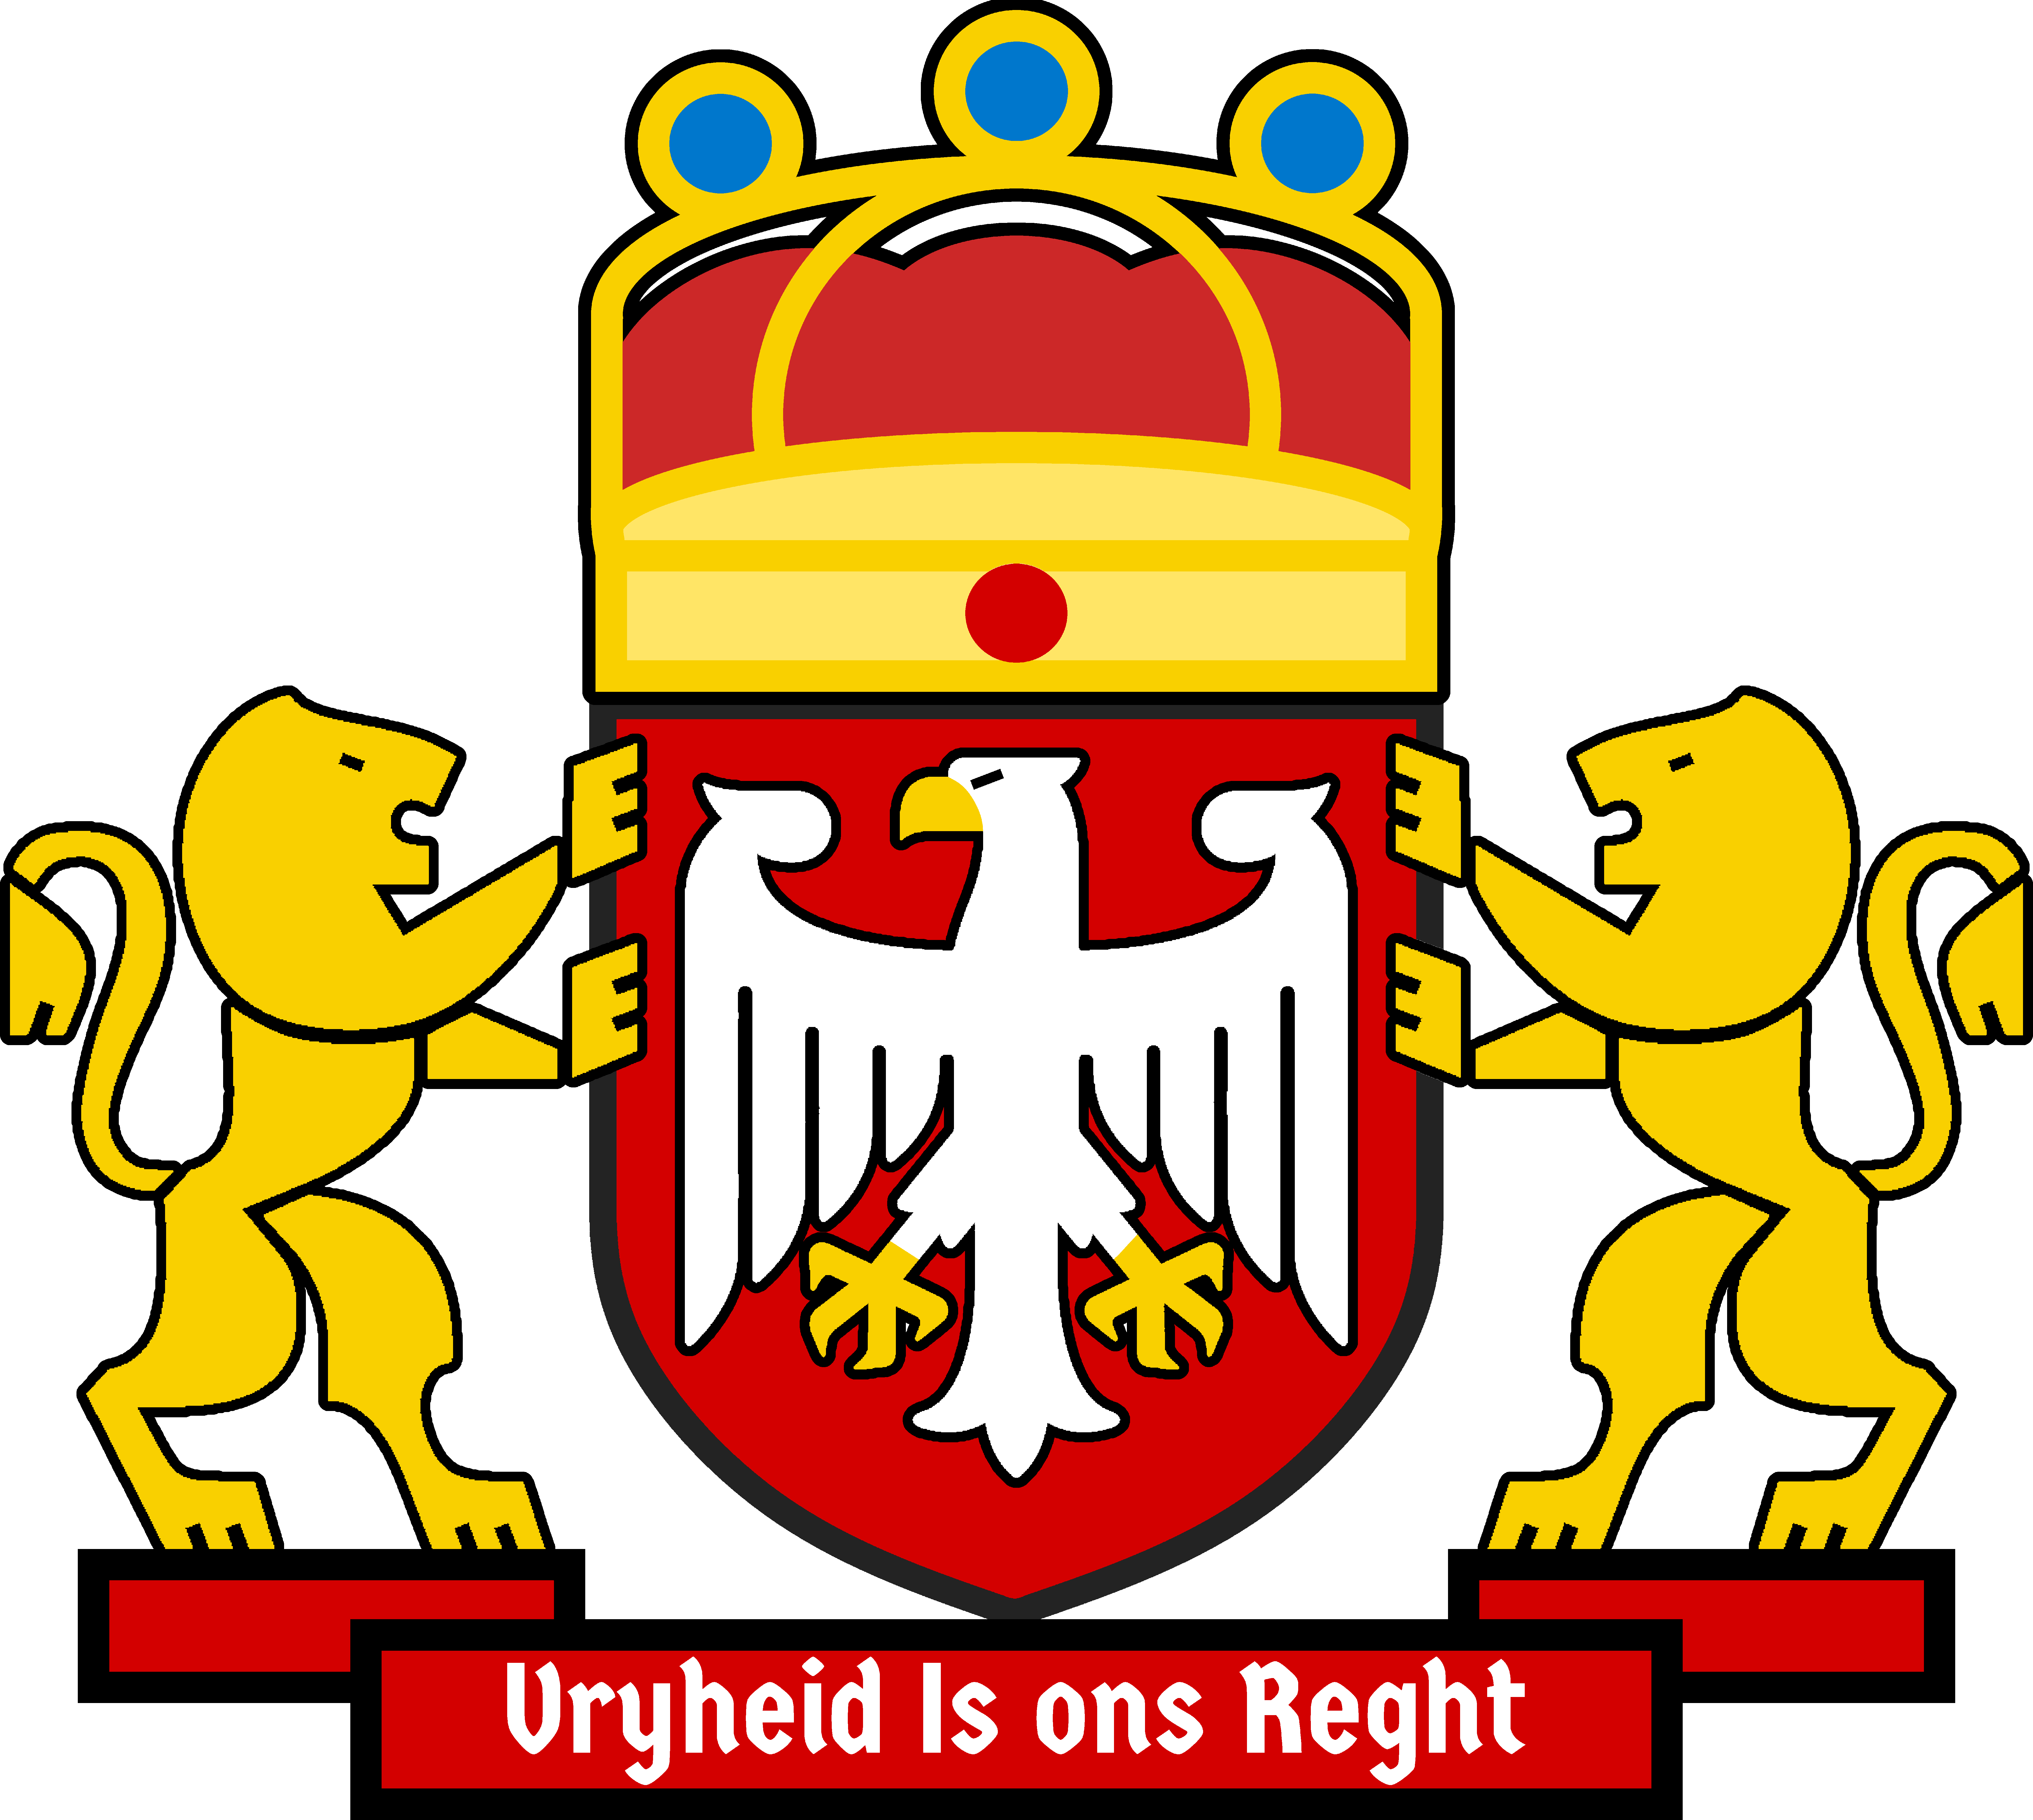 Coat of Arms Belgia V2.5.2 Small.png